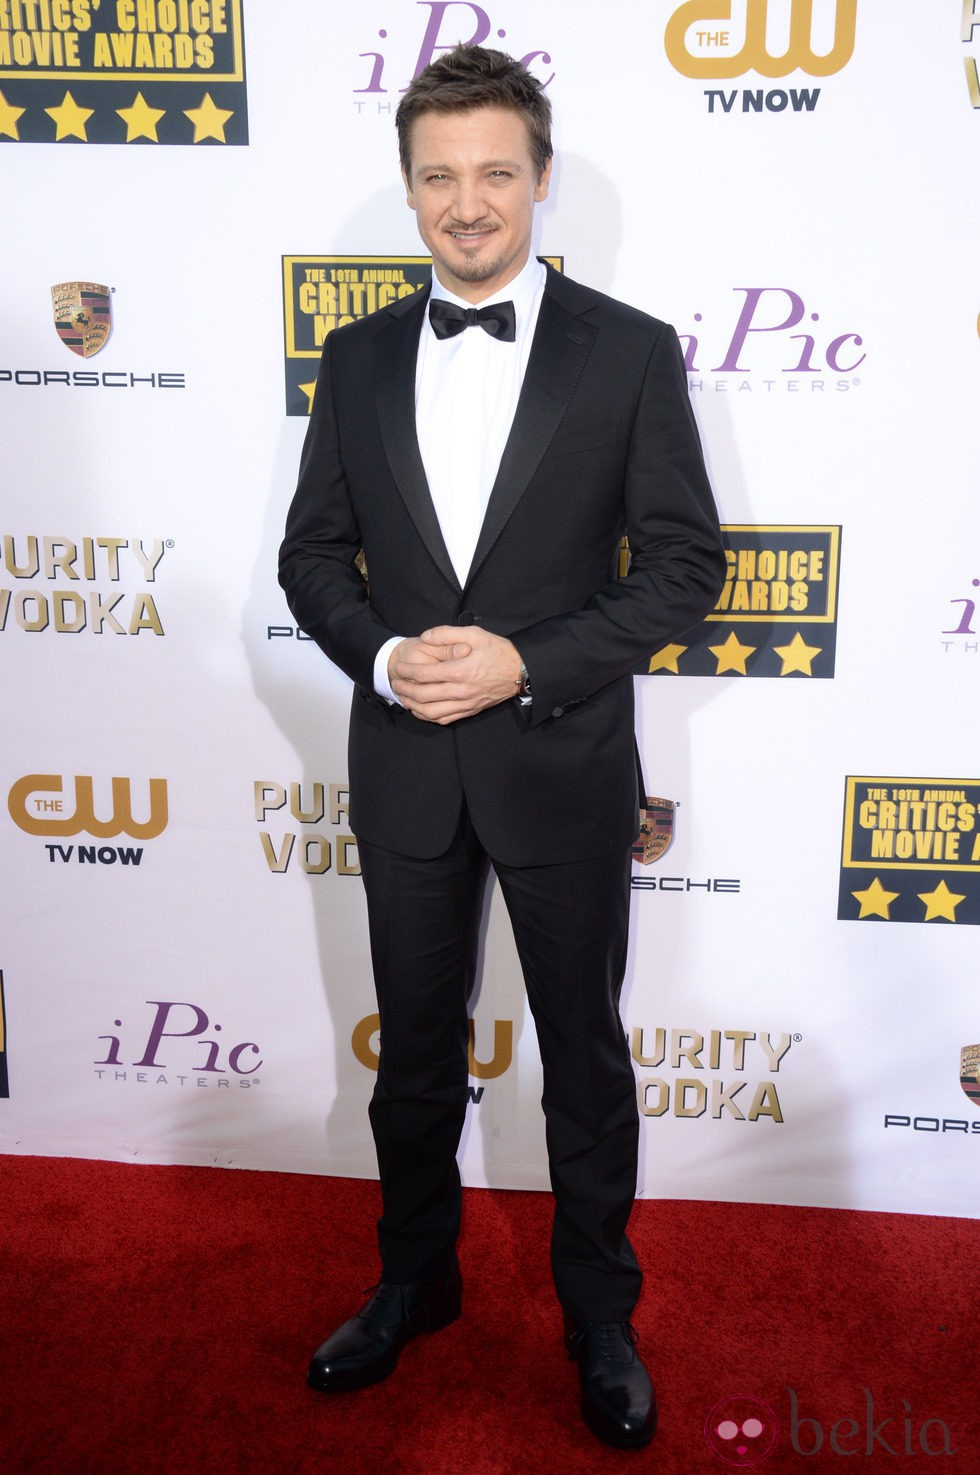 Jeremy Renner en la alfombra roja de los Critics' Choice Movie Awards 2014